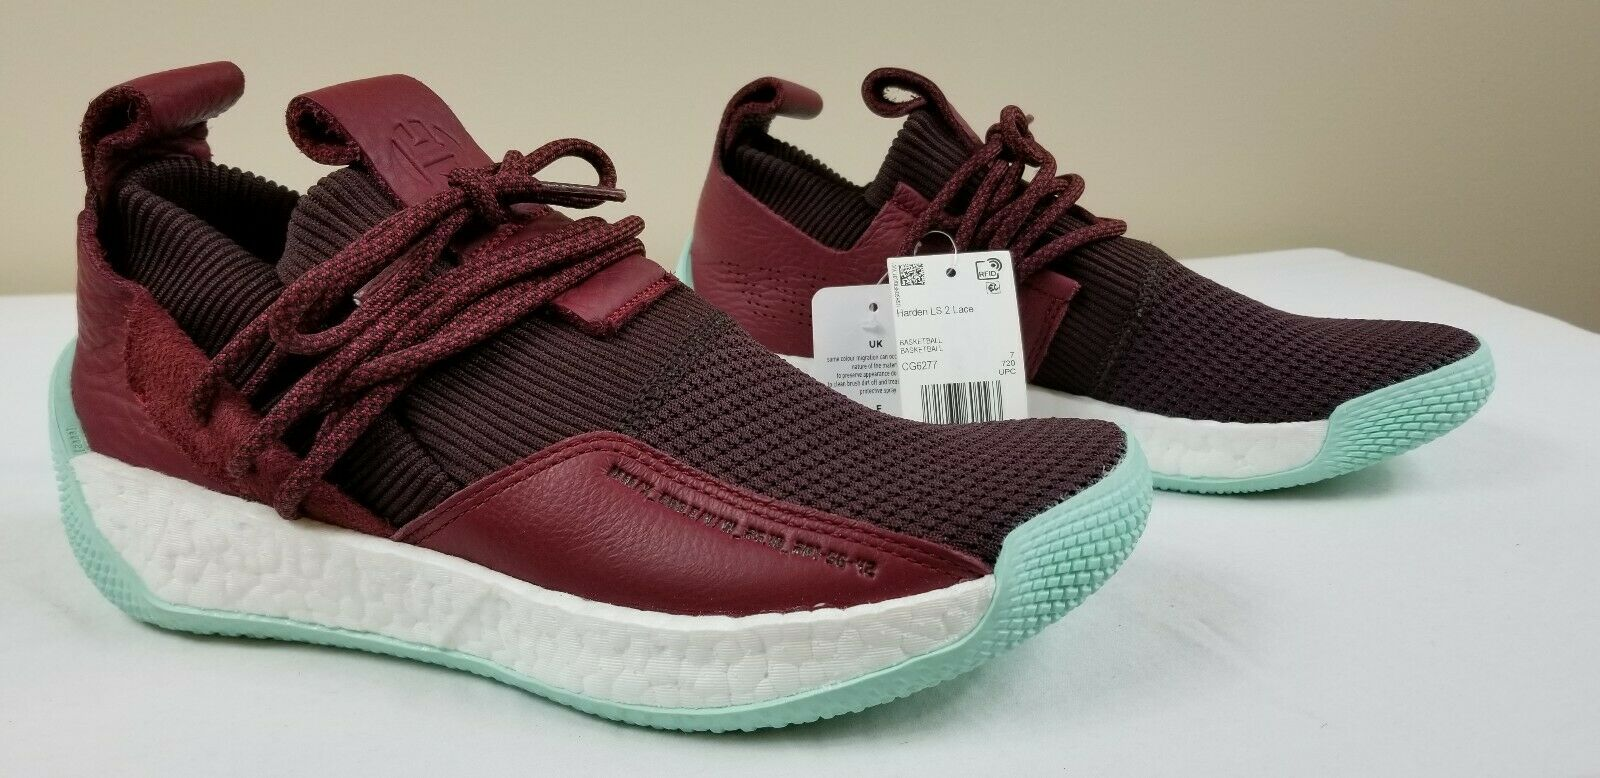 Adidas Performance Harden LS 2 Lace CG6277 Red Maroon Basketball shoes Size 7.5